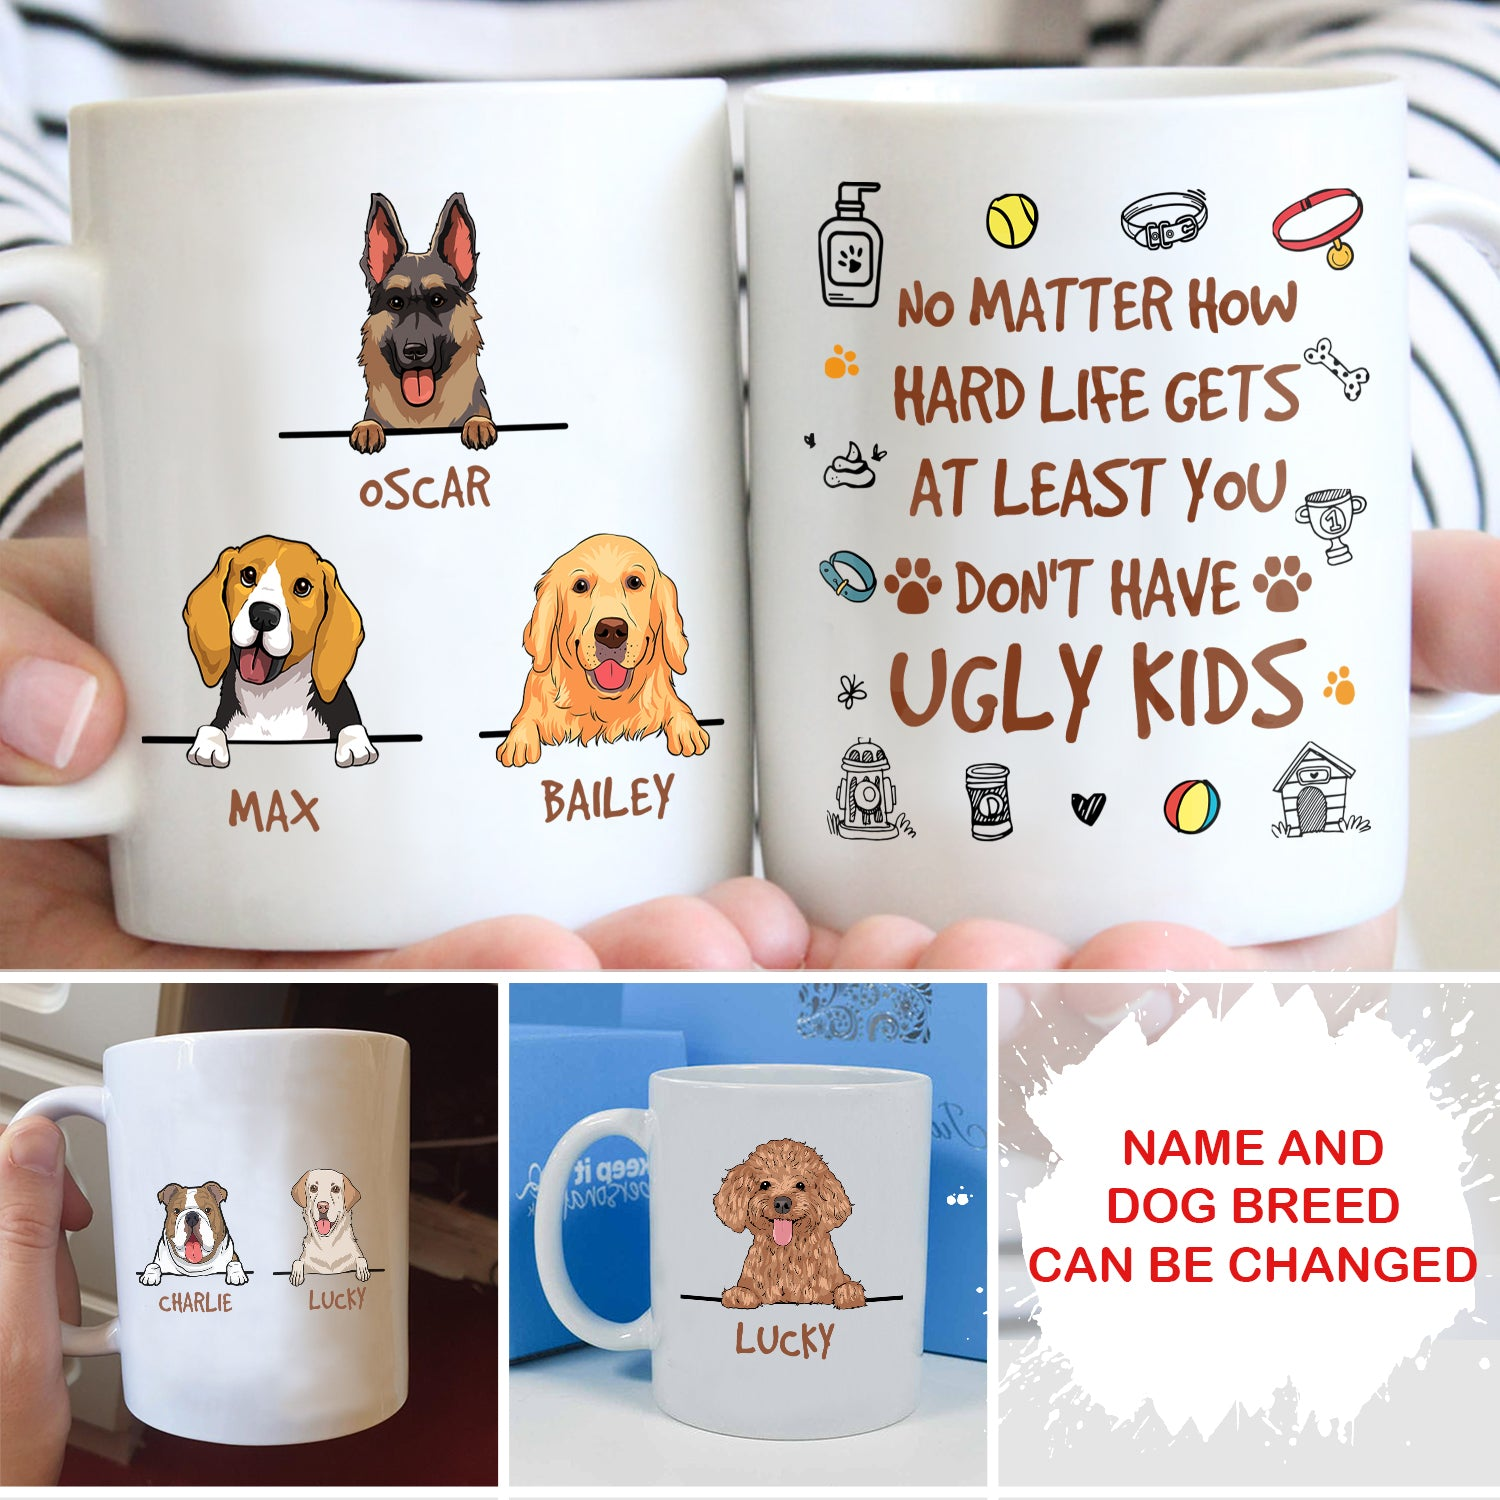 At least you don't have ugly kids - Personalized custom coffee mug